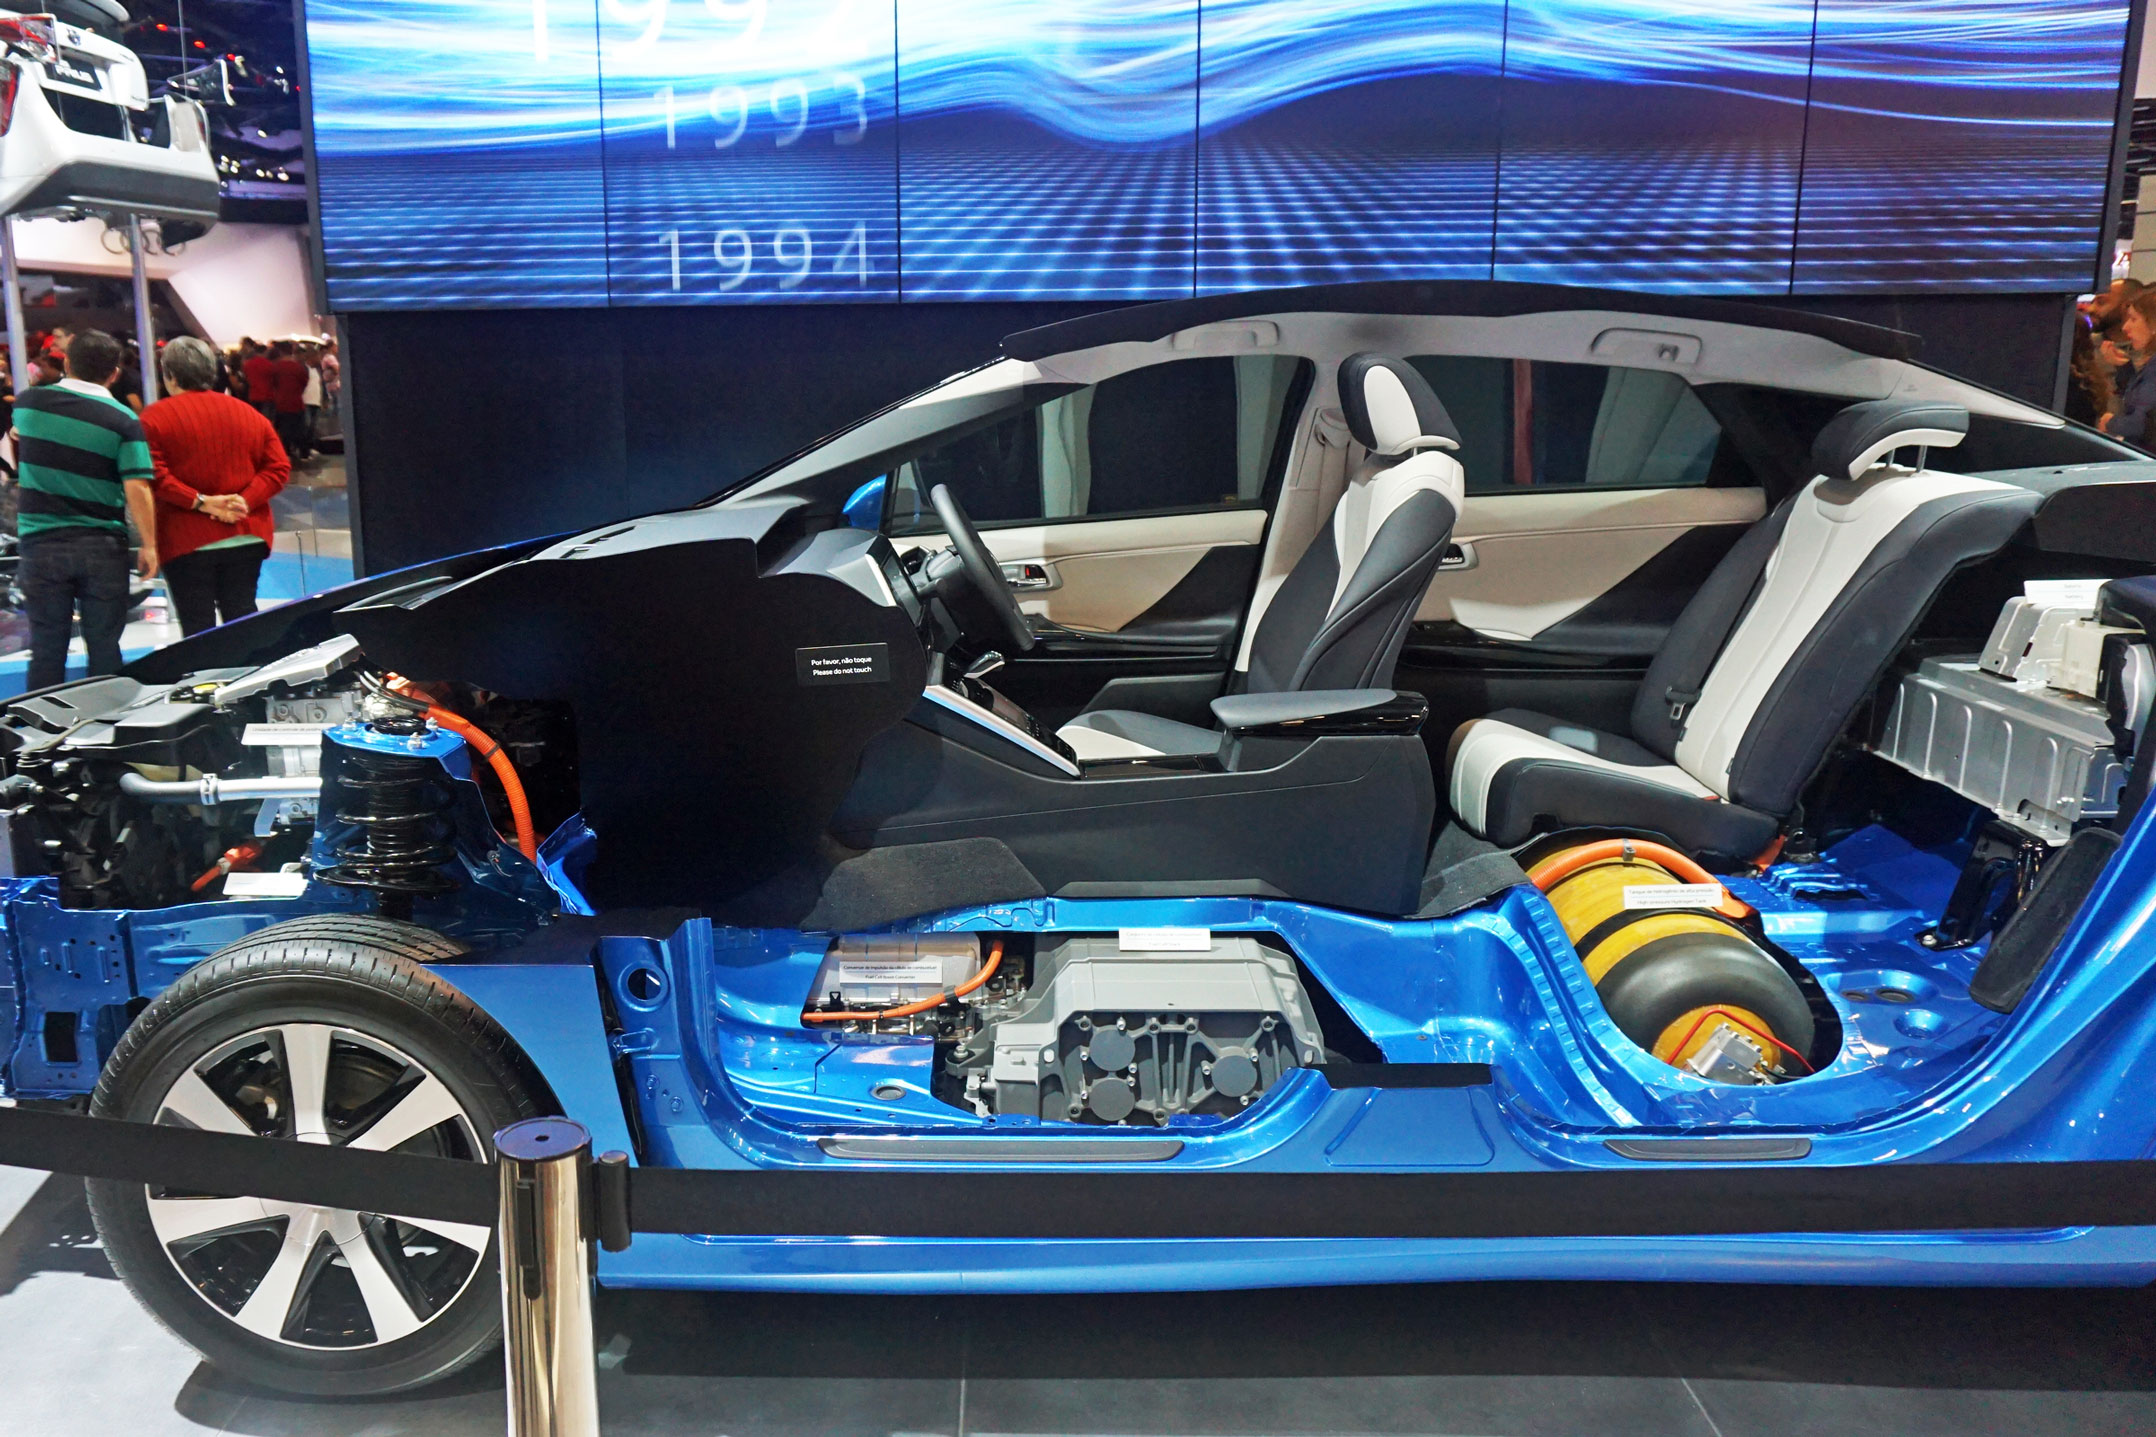 Hydrogen Cars Take A Back Seat To Electric Vehicles Techcentral Future Batteries That Could Power Your Home Mirai Cutaway Showing The Control Unit And Traction Motor In Front Fuel Cell Stack Storage Tank Middle